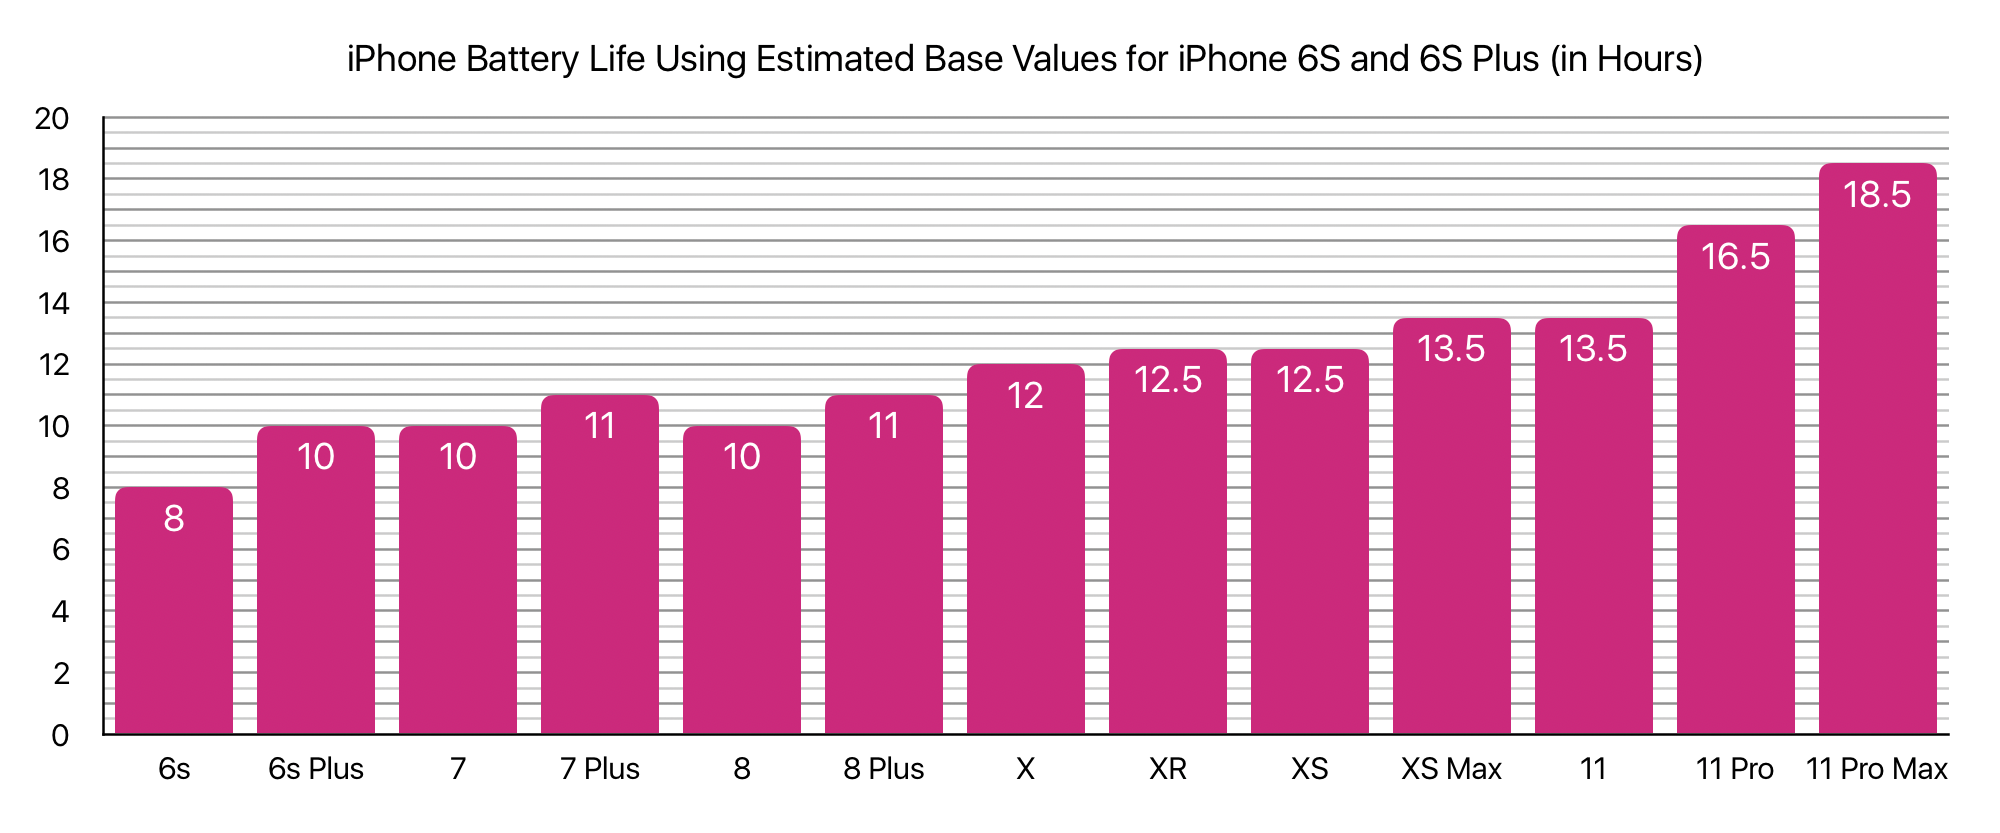 iPhone Battery Life Using Estimated Base Values for iPhone 6S and 6S Plus (in Hours)